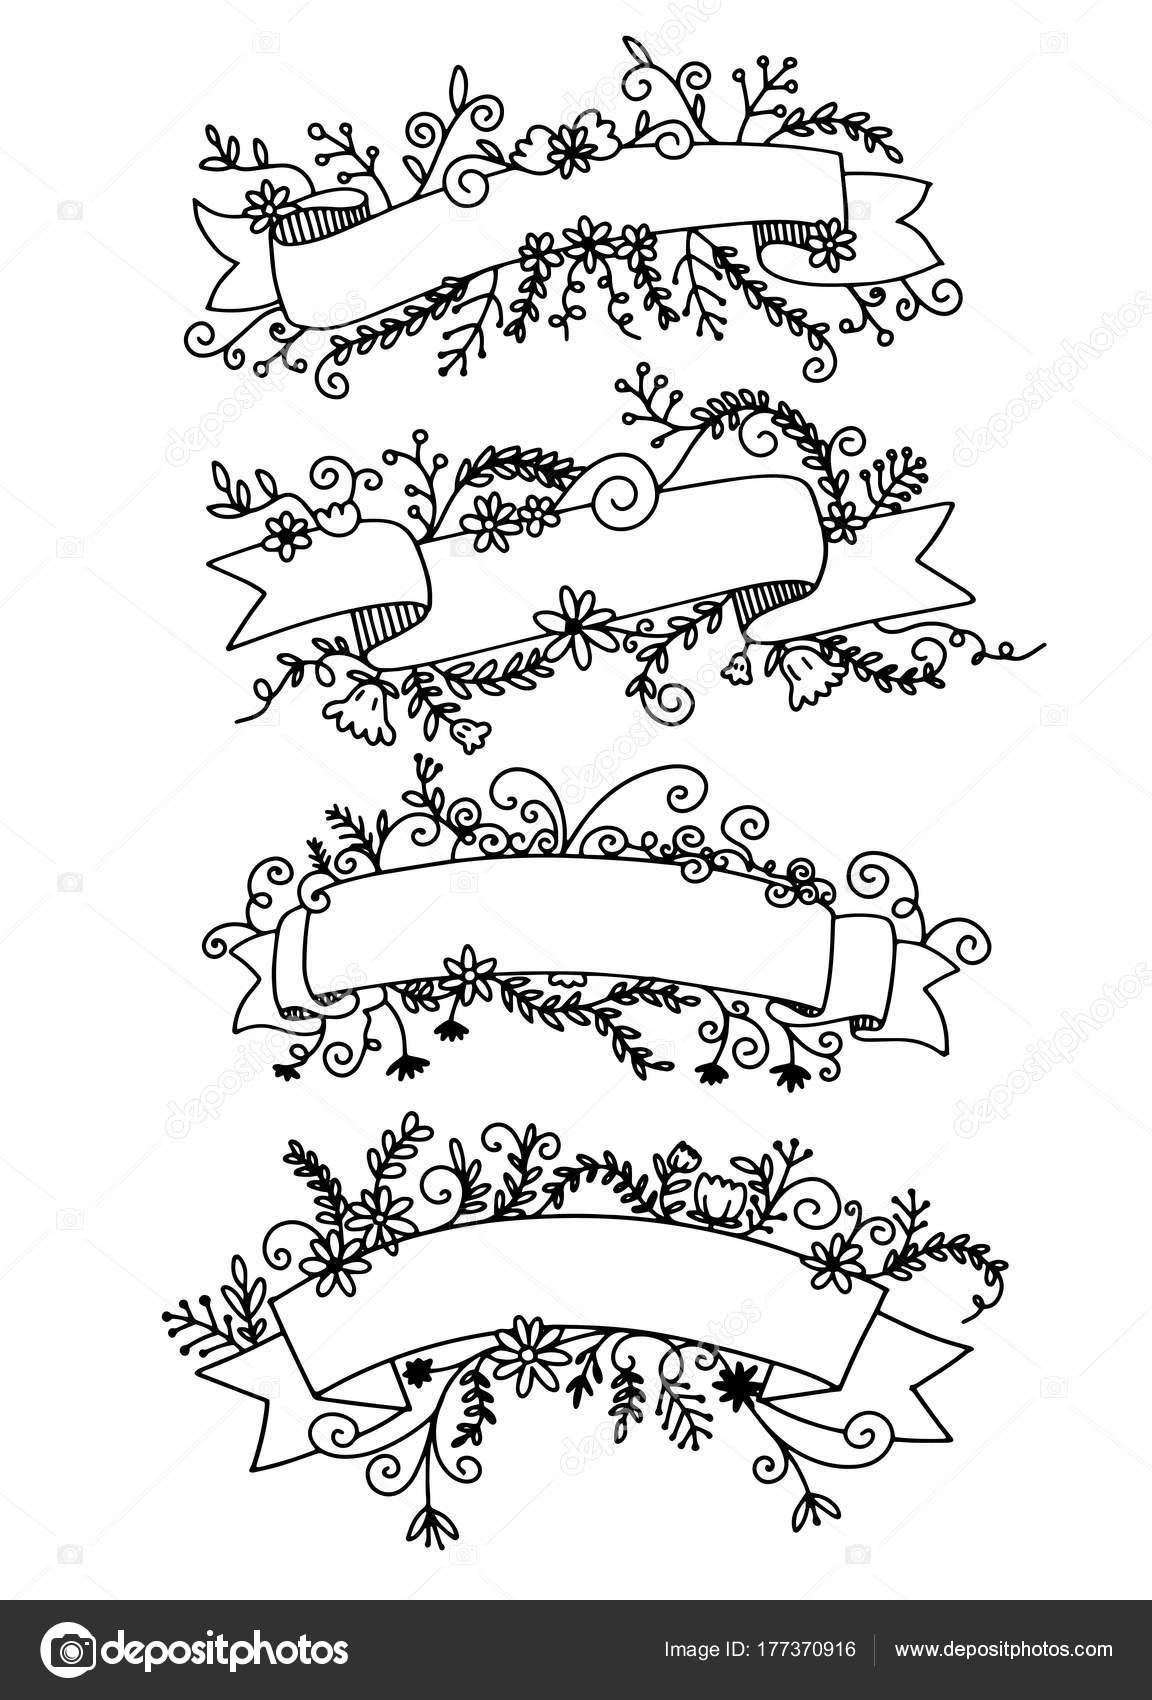 Sketched Rustic Decorative Banners Dividers Ribbons With Floral Swirls And Branches Vintage Outlined Vector Illustration By 9george